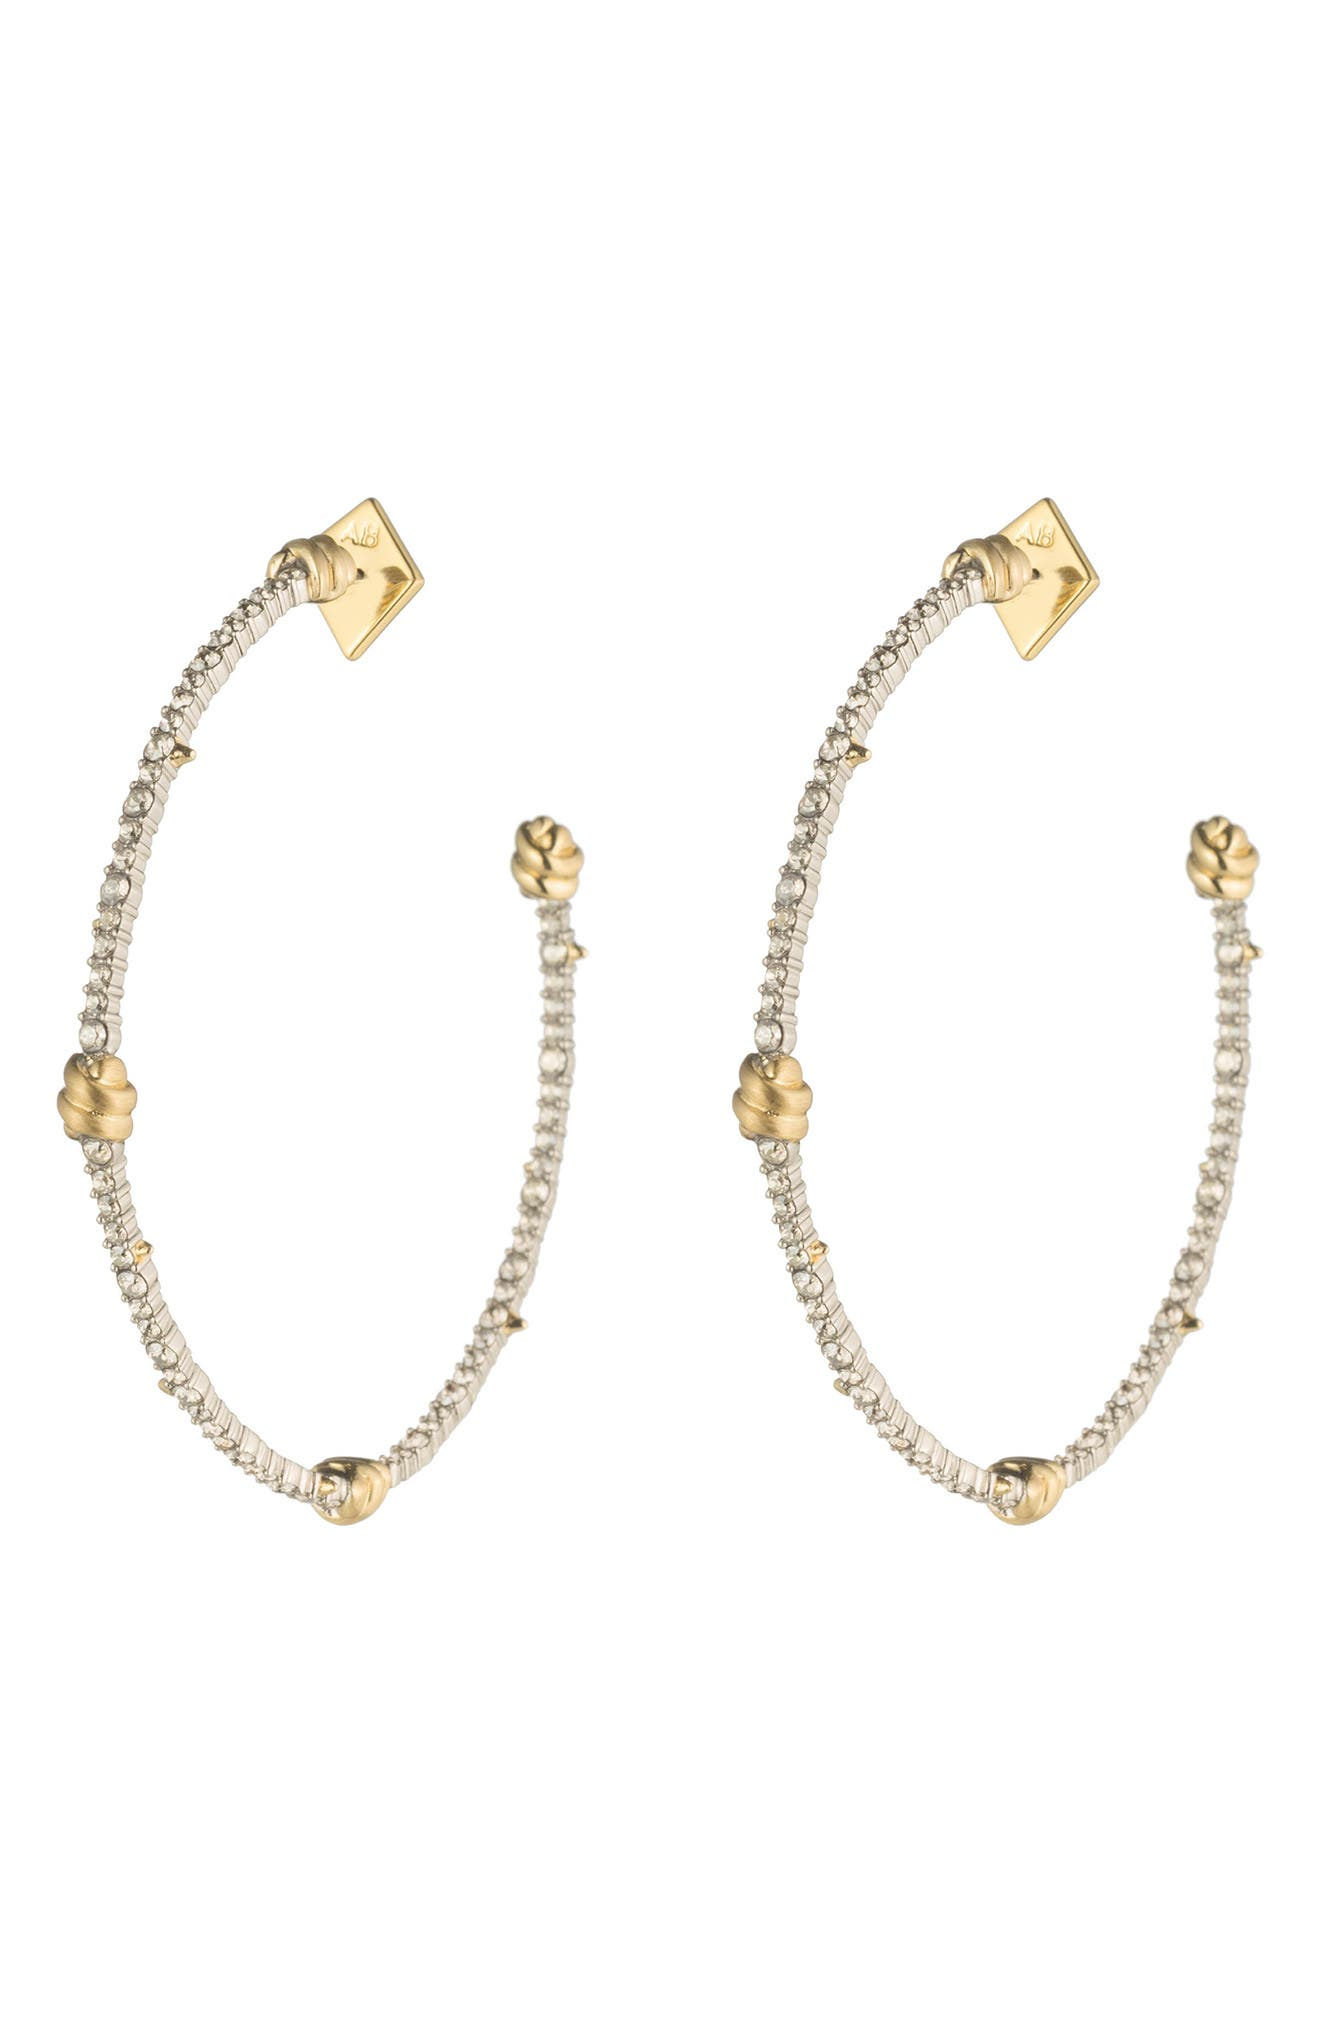 Alexis Bittar Crystal Pavé Knotted Hoop Earrings